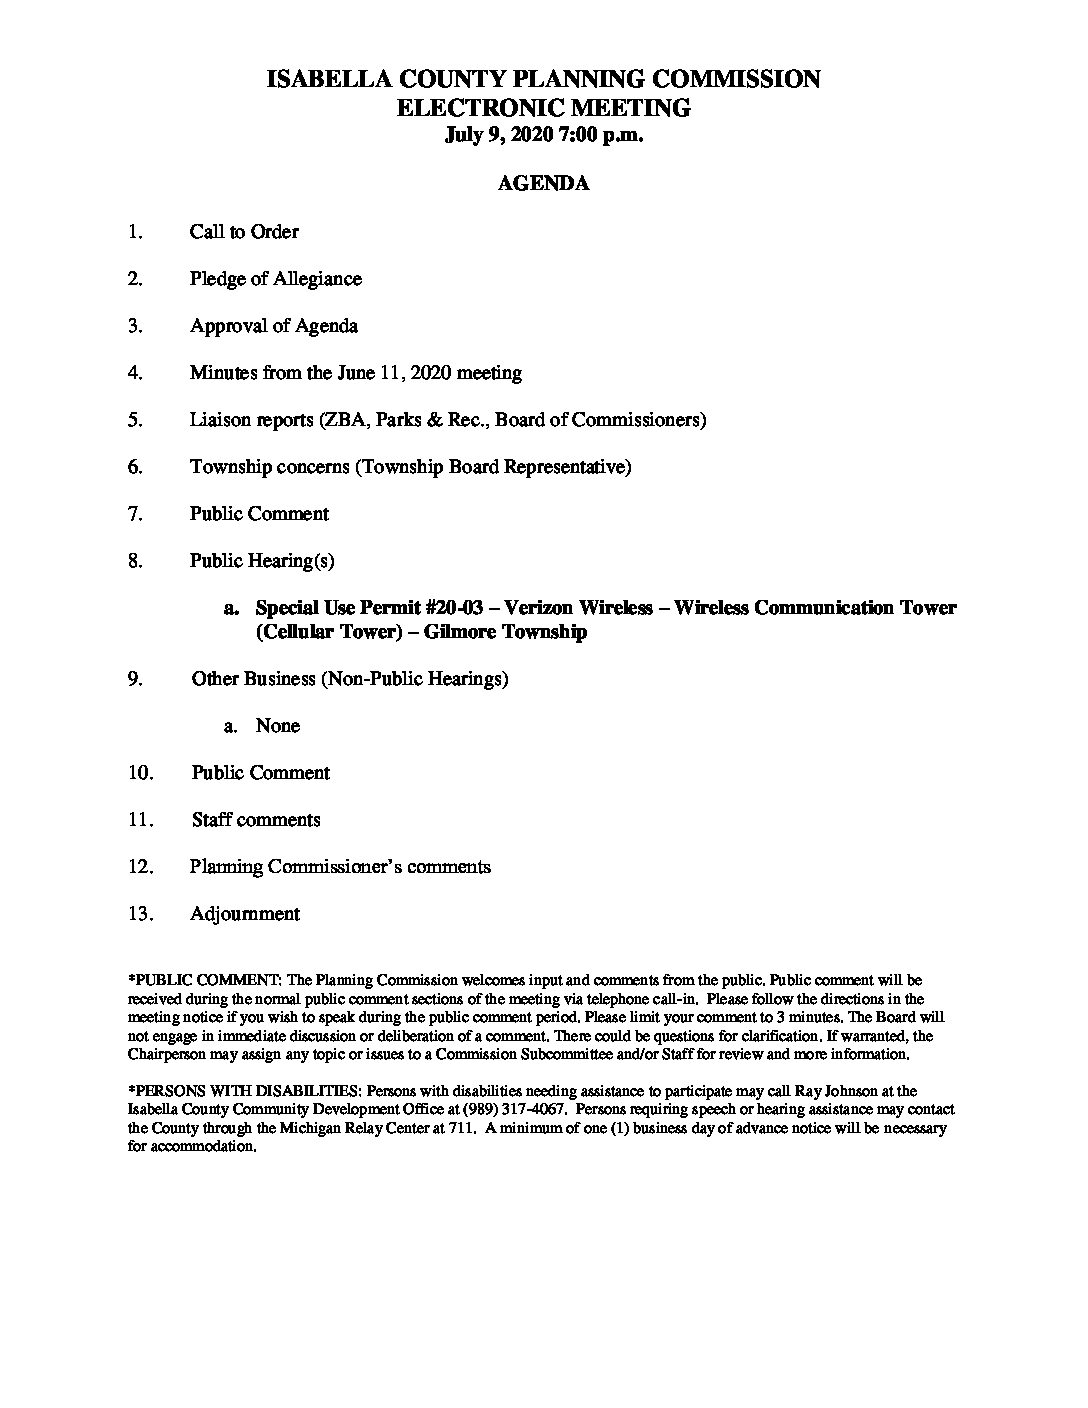 preview image of first page July 9, 2020 Agenda